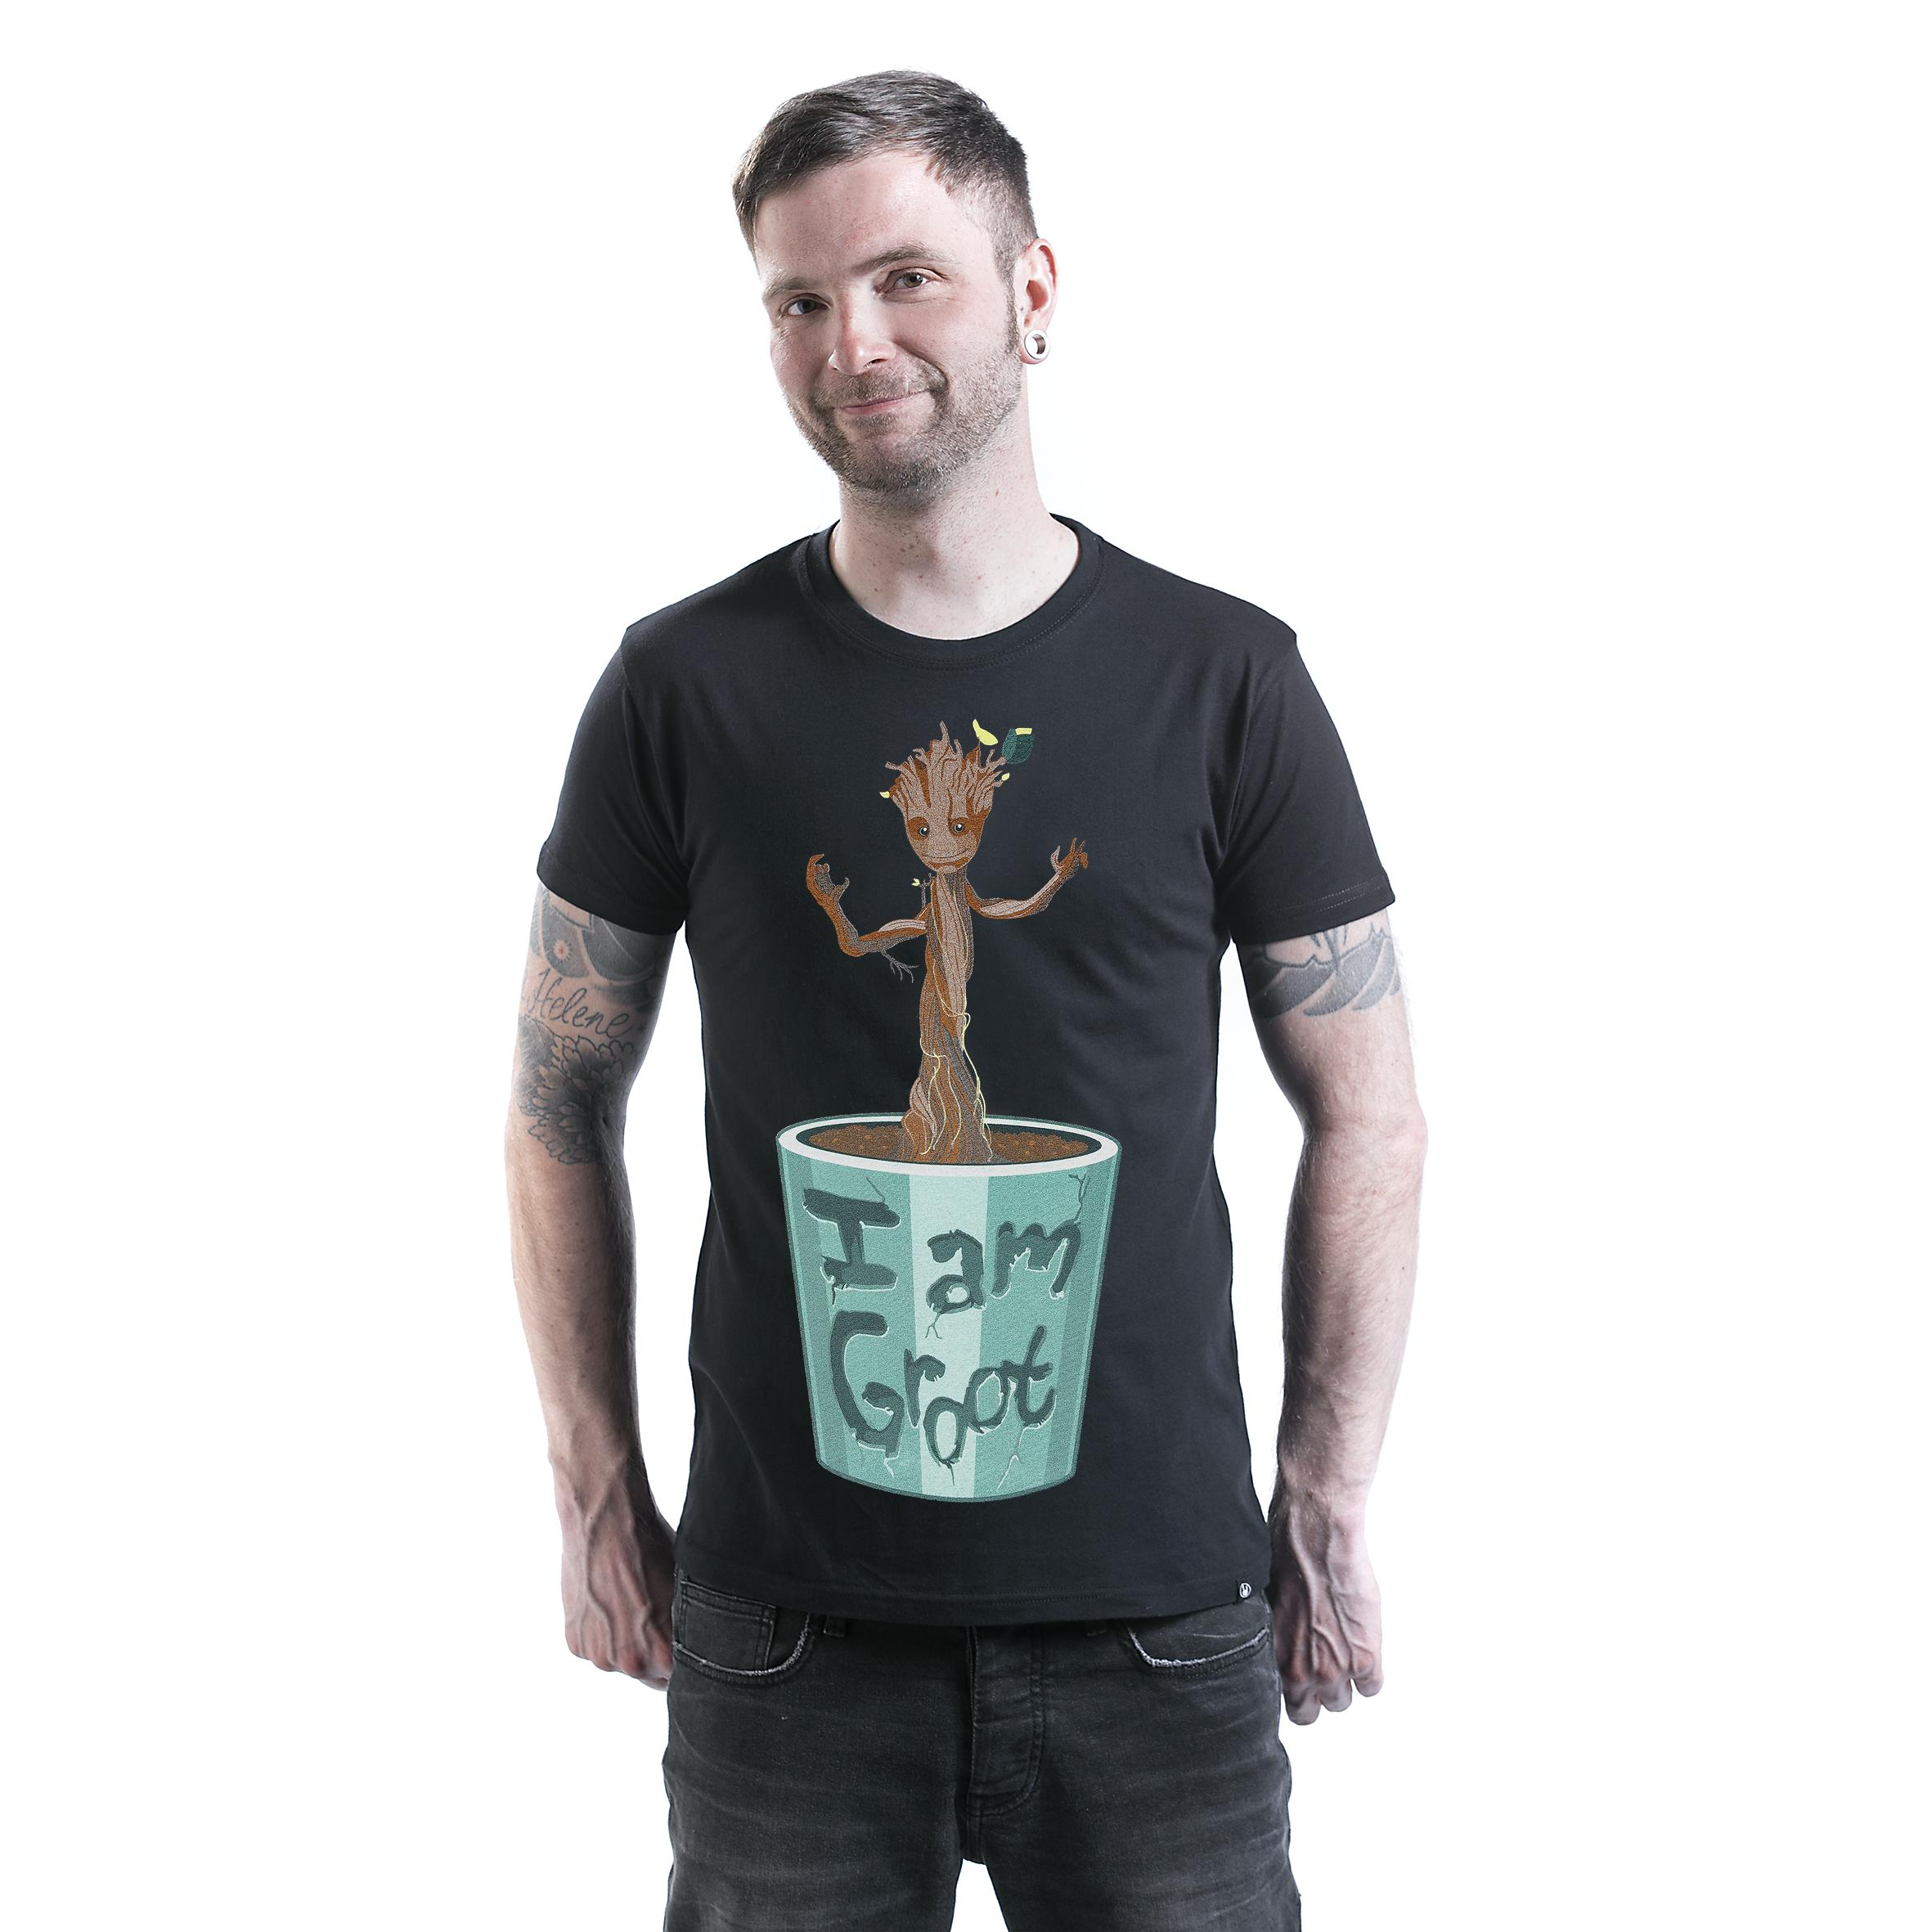 I Am Groot T-shirt Design man